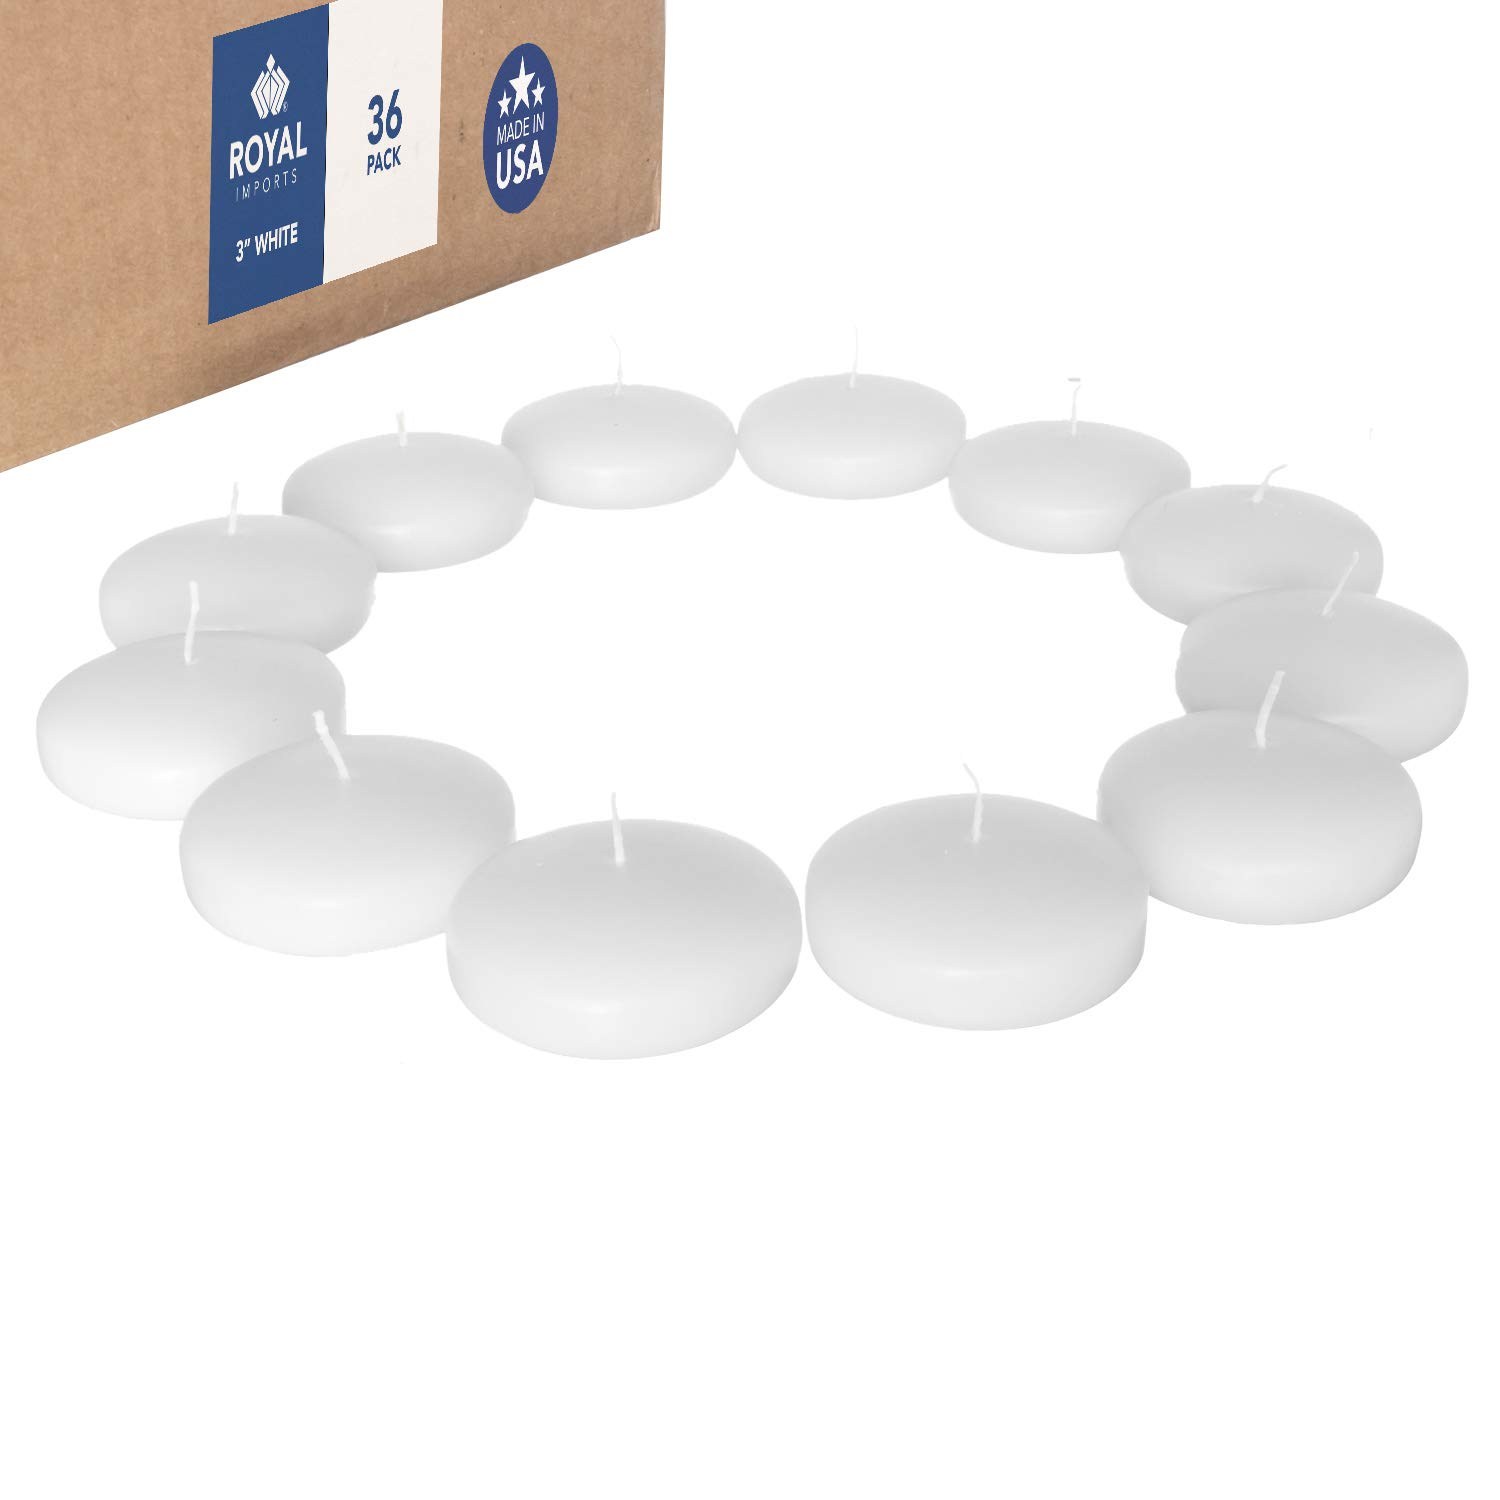 Royal Imports Floating disc Candles for Wedding, Birthday, Holiday & Home Decoration, 3 Inch, White Wax, Set of 36 by Royal Imports (Image #1)